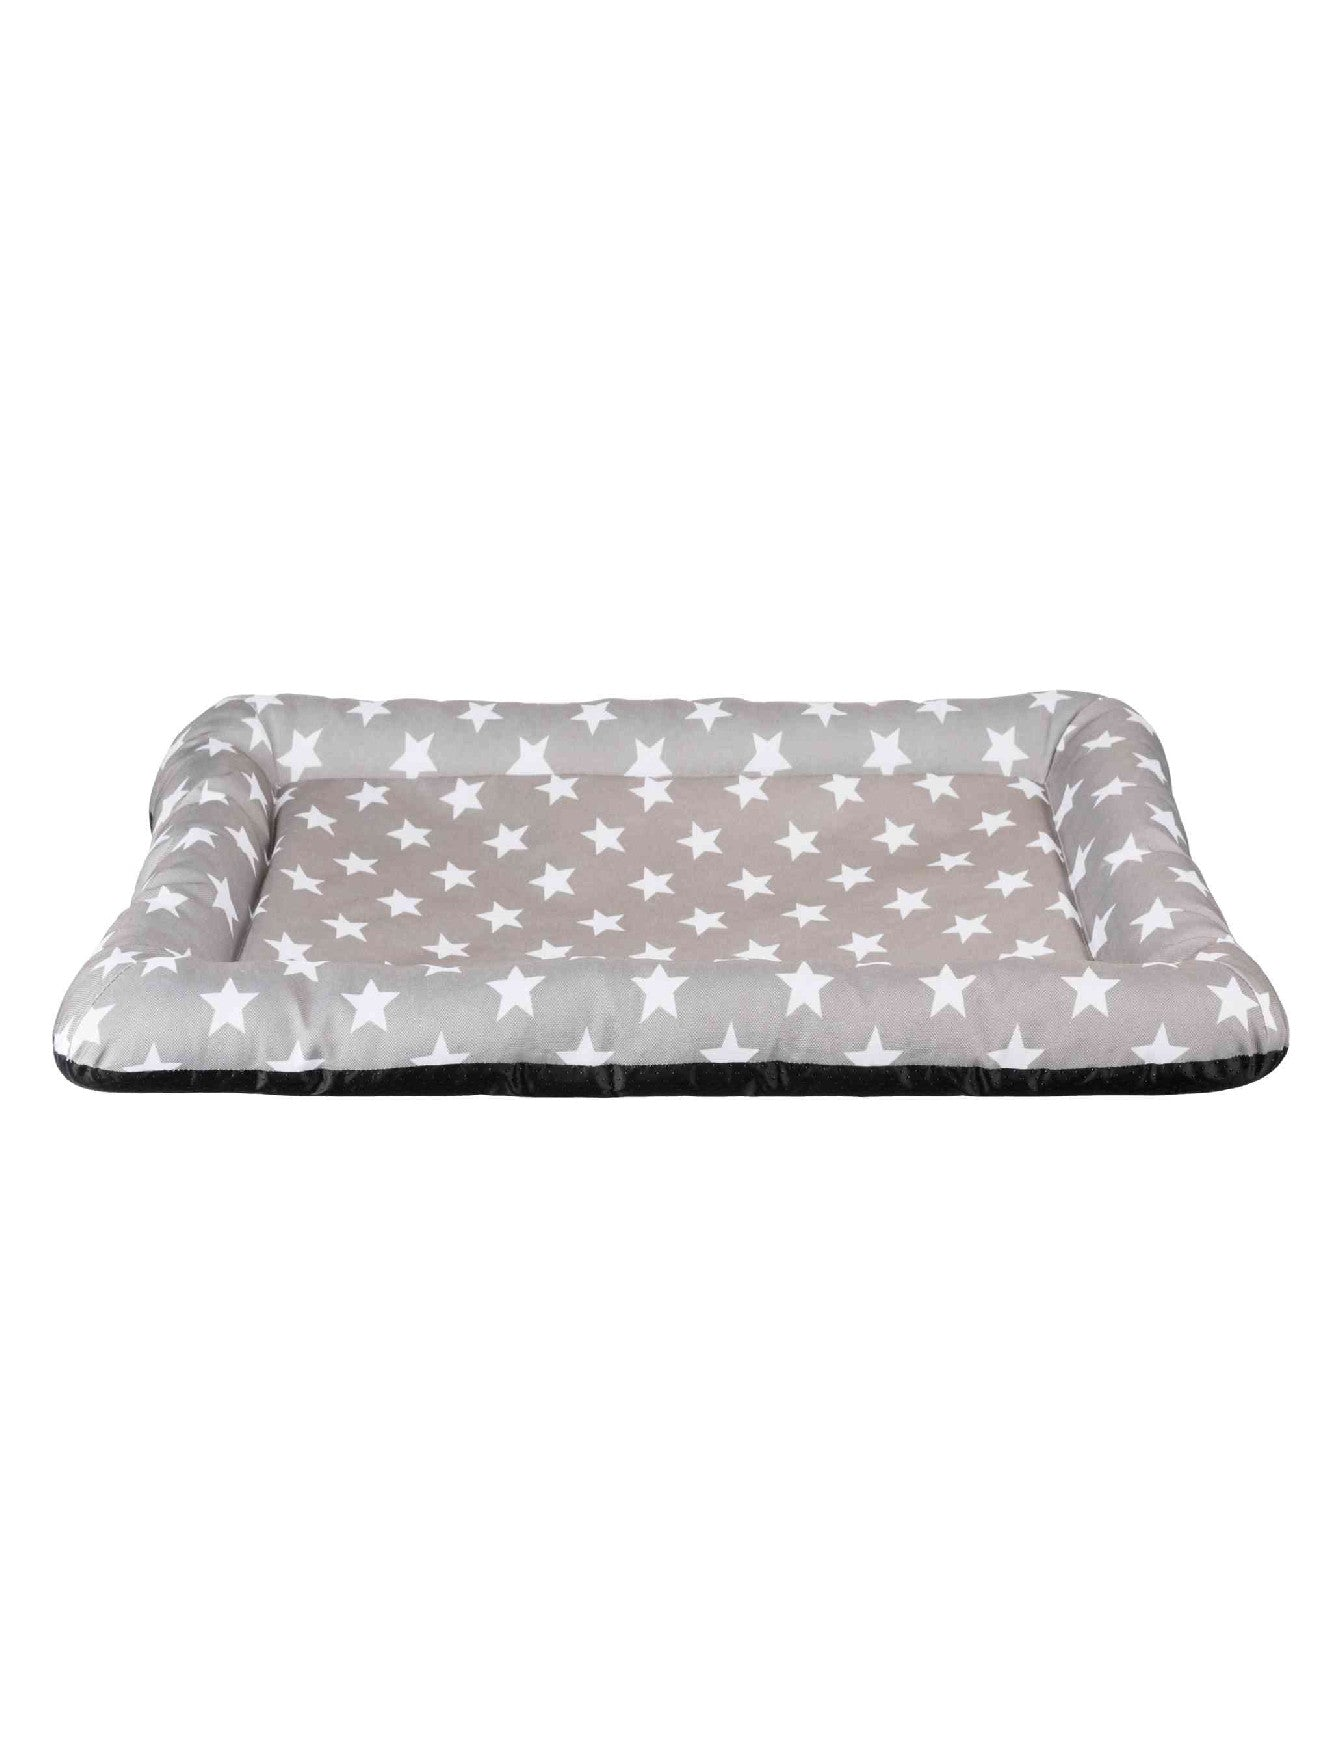 Trixie Stars Lying Mat Taupe For Dogs (3 Sizes) | Perromart Online Pet Store Singapore